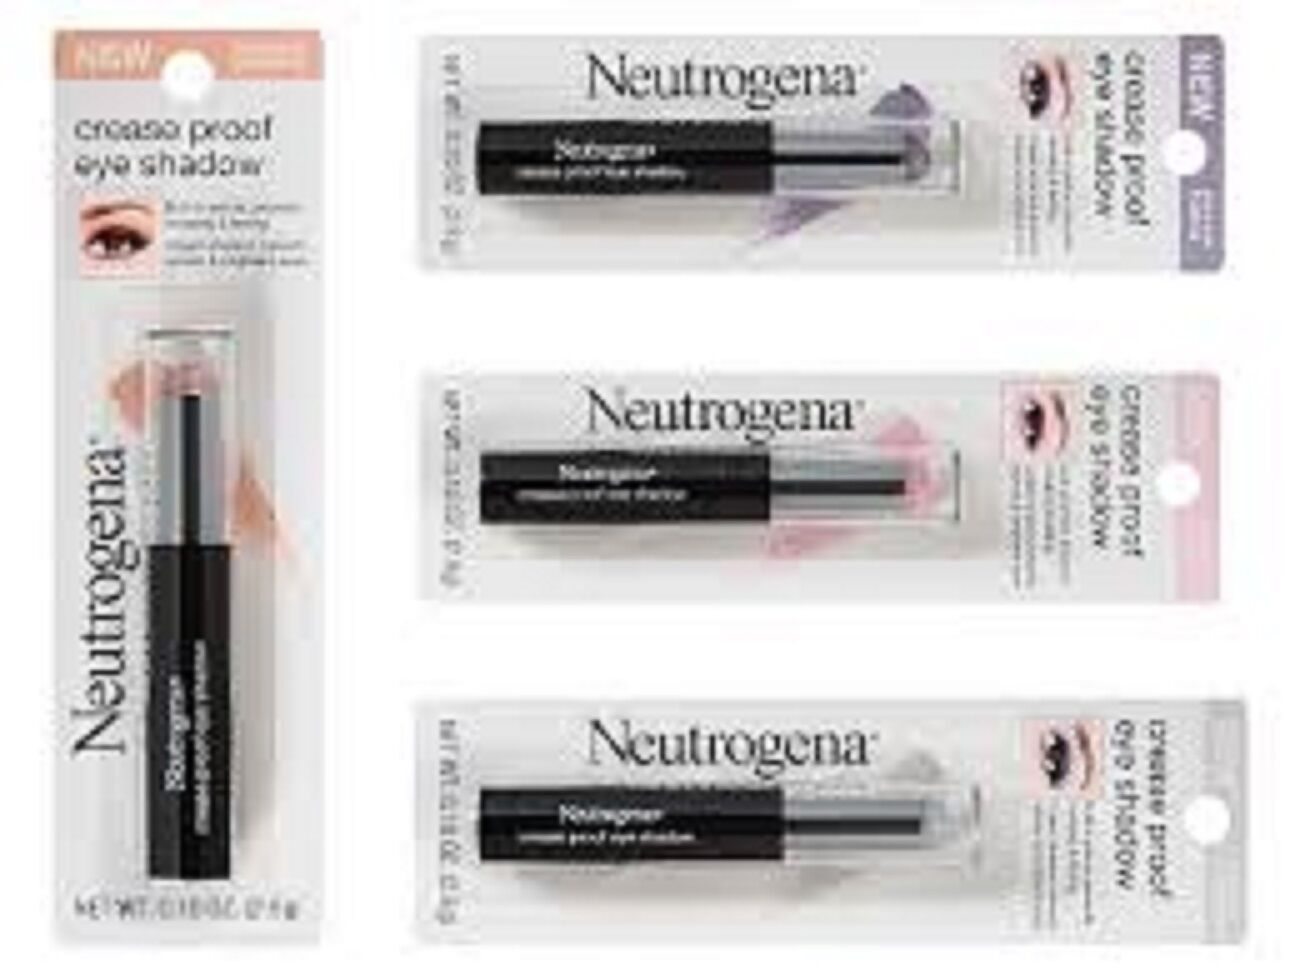 Neutrogena Crease Proof Eye Shadow With Built-In Primer .10